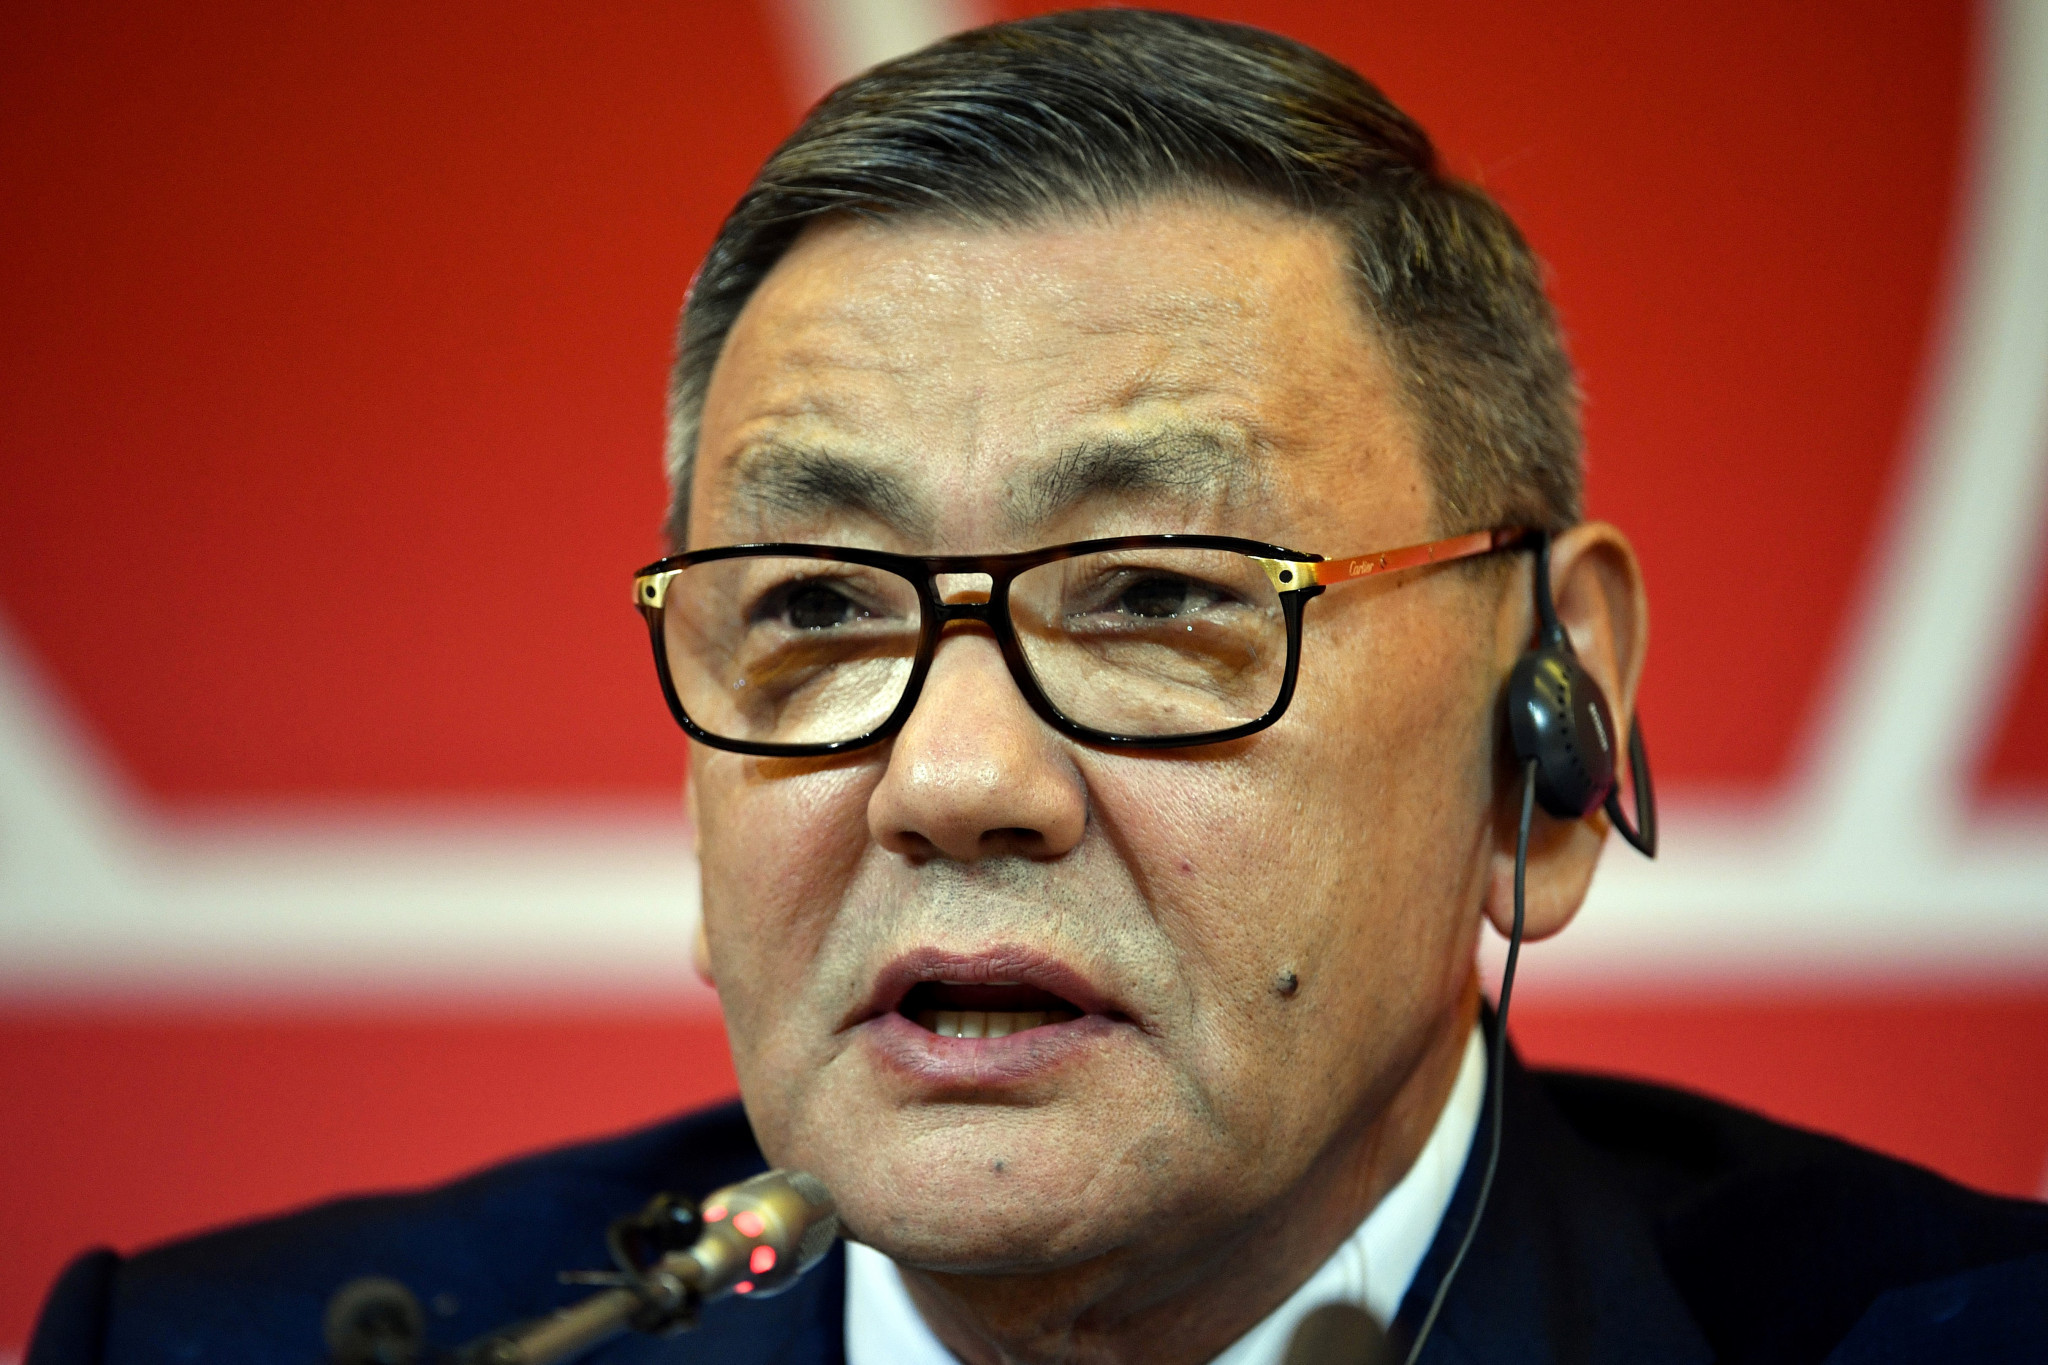 Gafur Rakhimov announced last week that he was stepping aside as AIBA President ©Getty Images